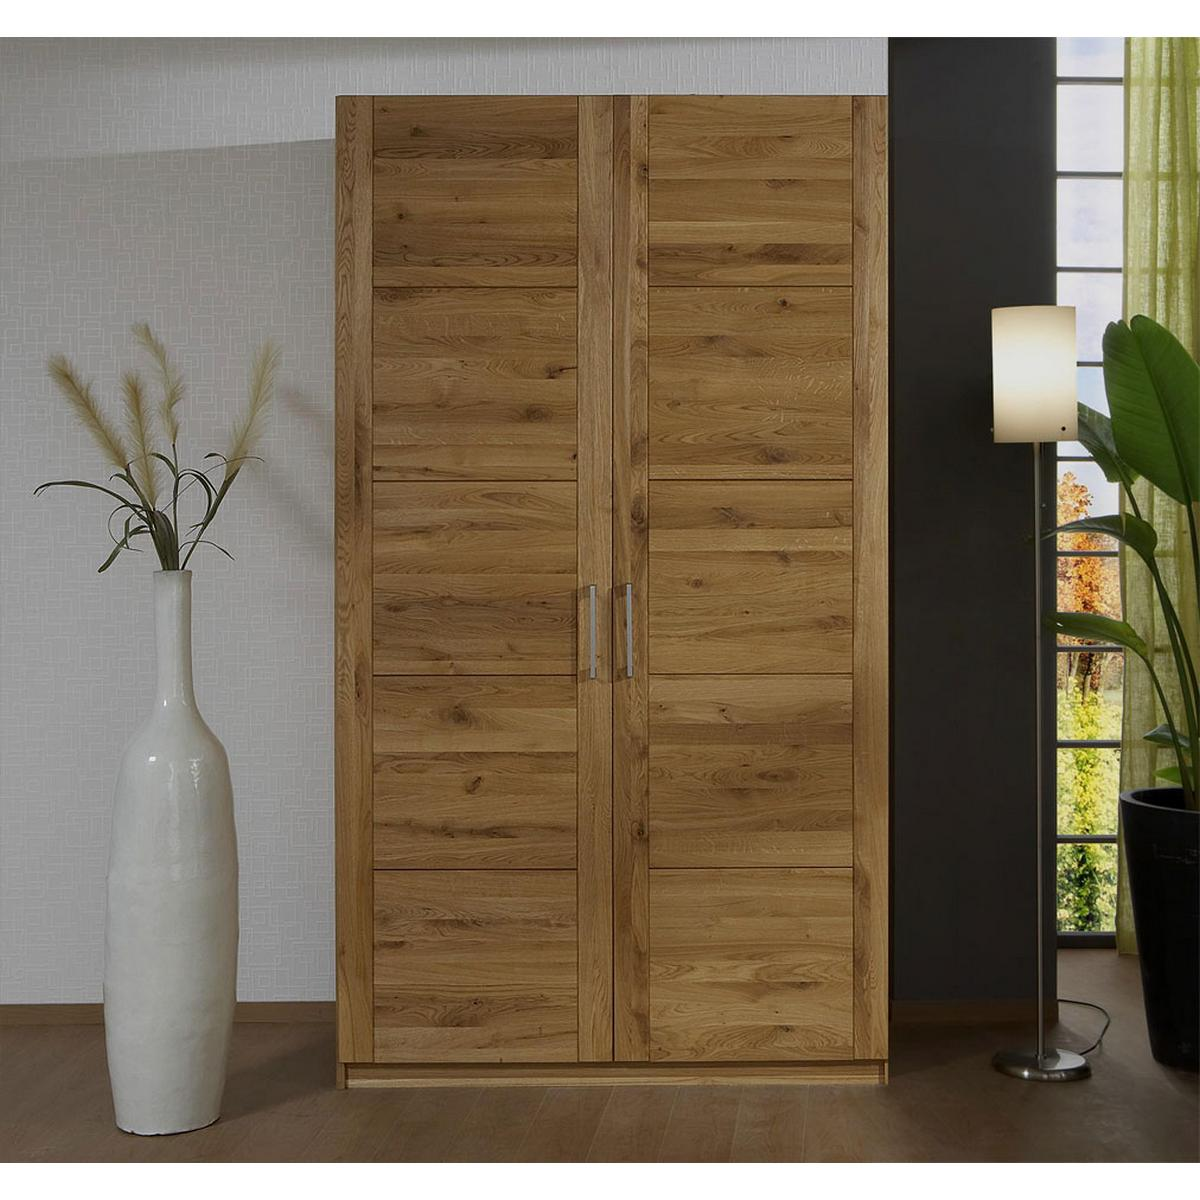 echtholz kleiderschrank eiche 2 t rig quattra wildeiche massiv ge lt bei casa de mobila. Black Bedroom Furniture Sets. Home Design Ideas